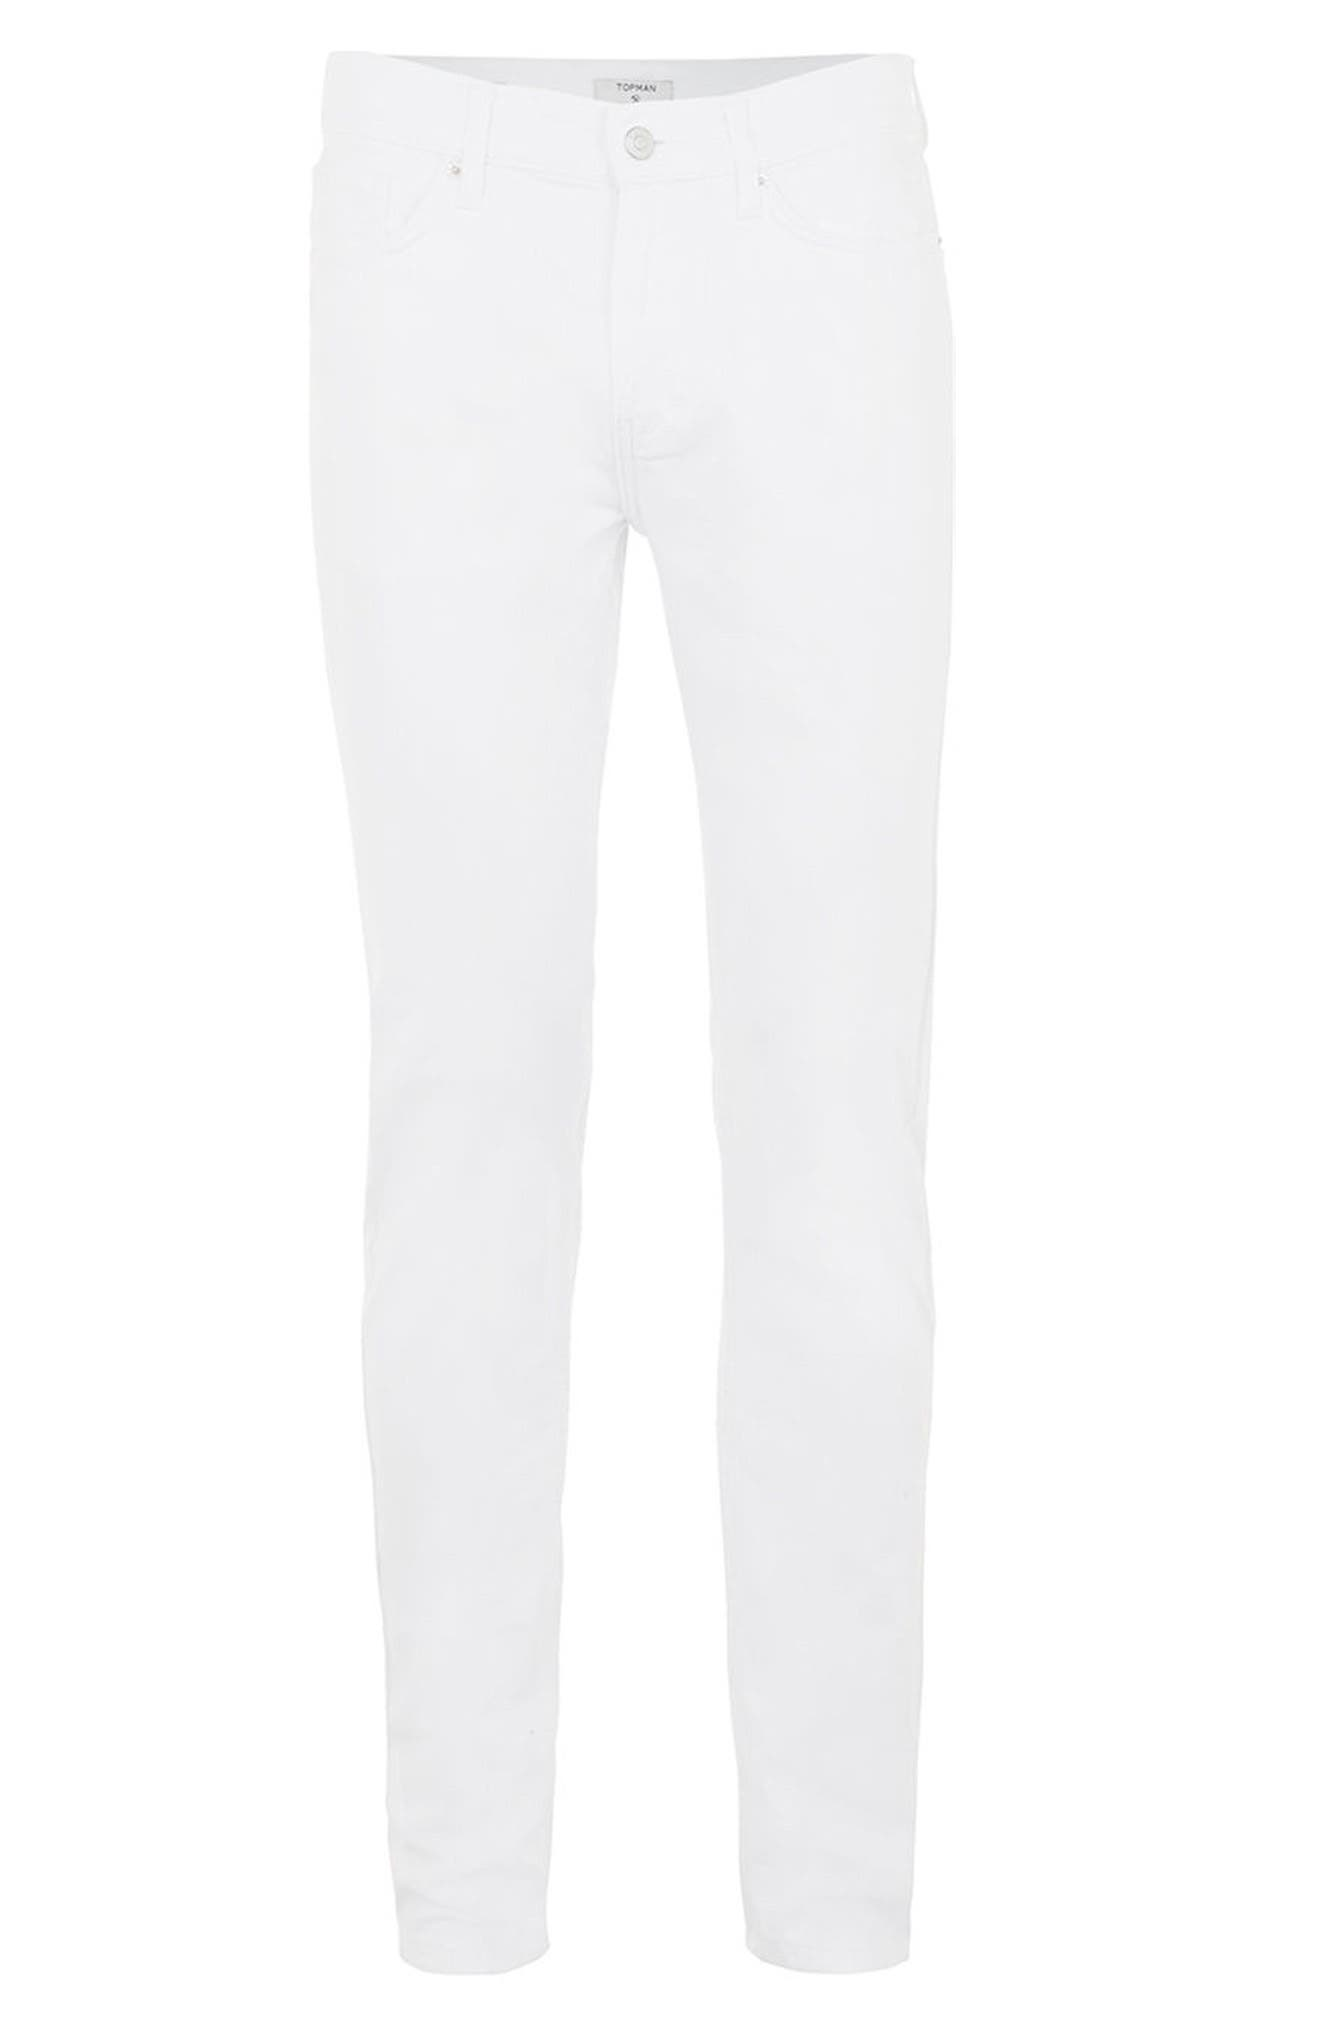 Stretch Skinny Fit Jeans,                             Alternate thumbnail 6, color,                             White